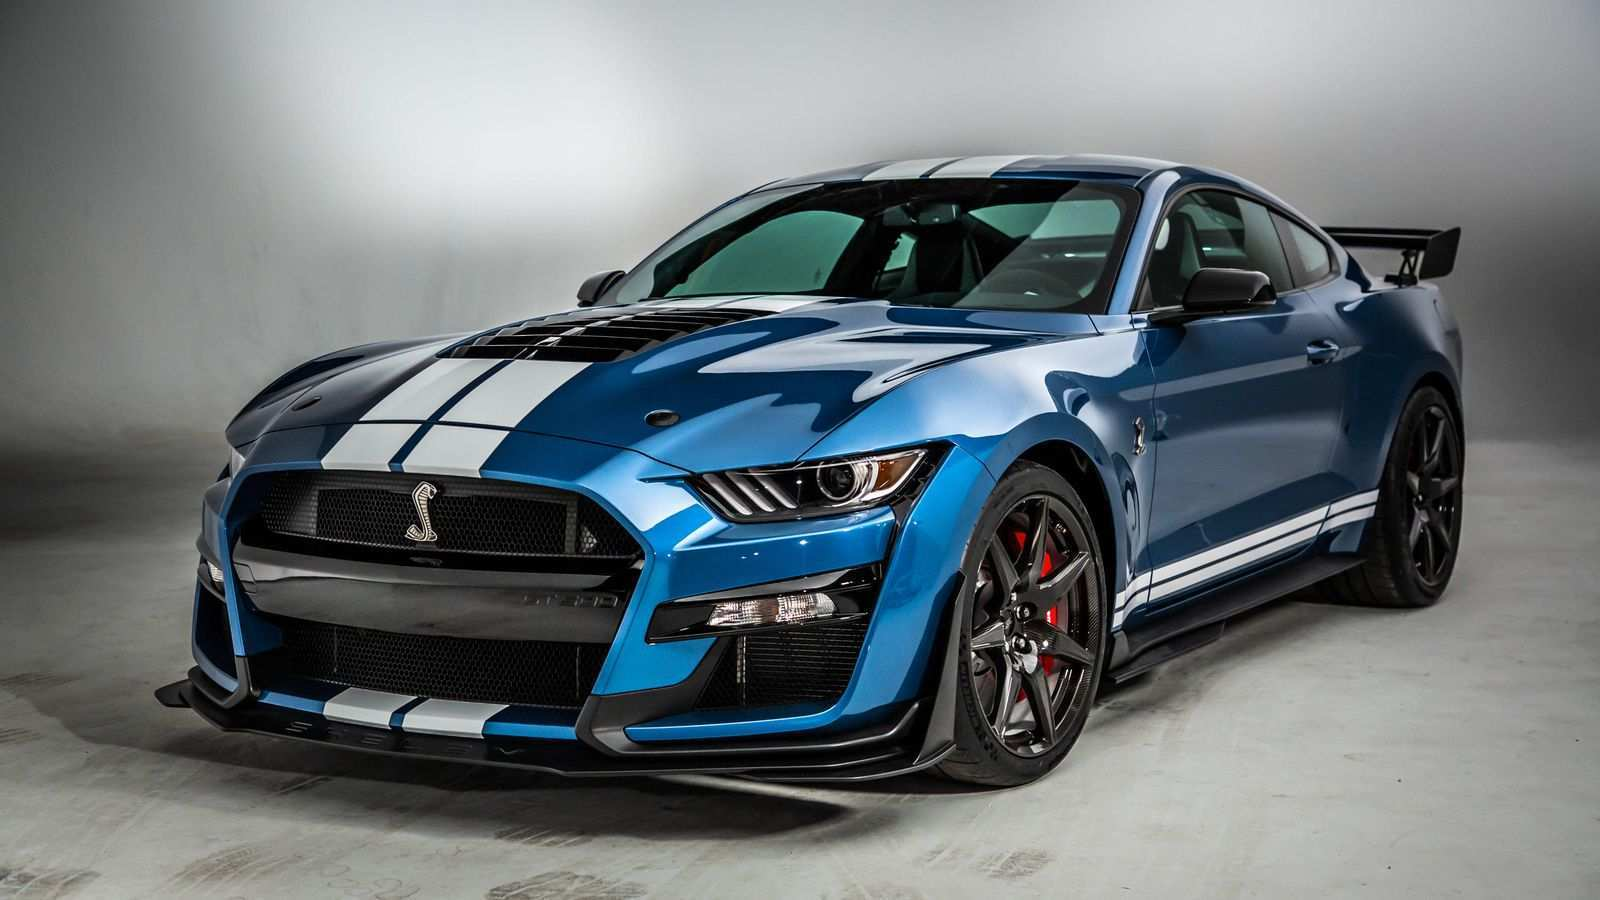 82 New 2020 Mustang Shelby Gt350 Overview with 2020 Mustang Shelby Gt350